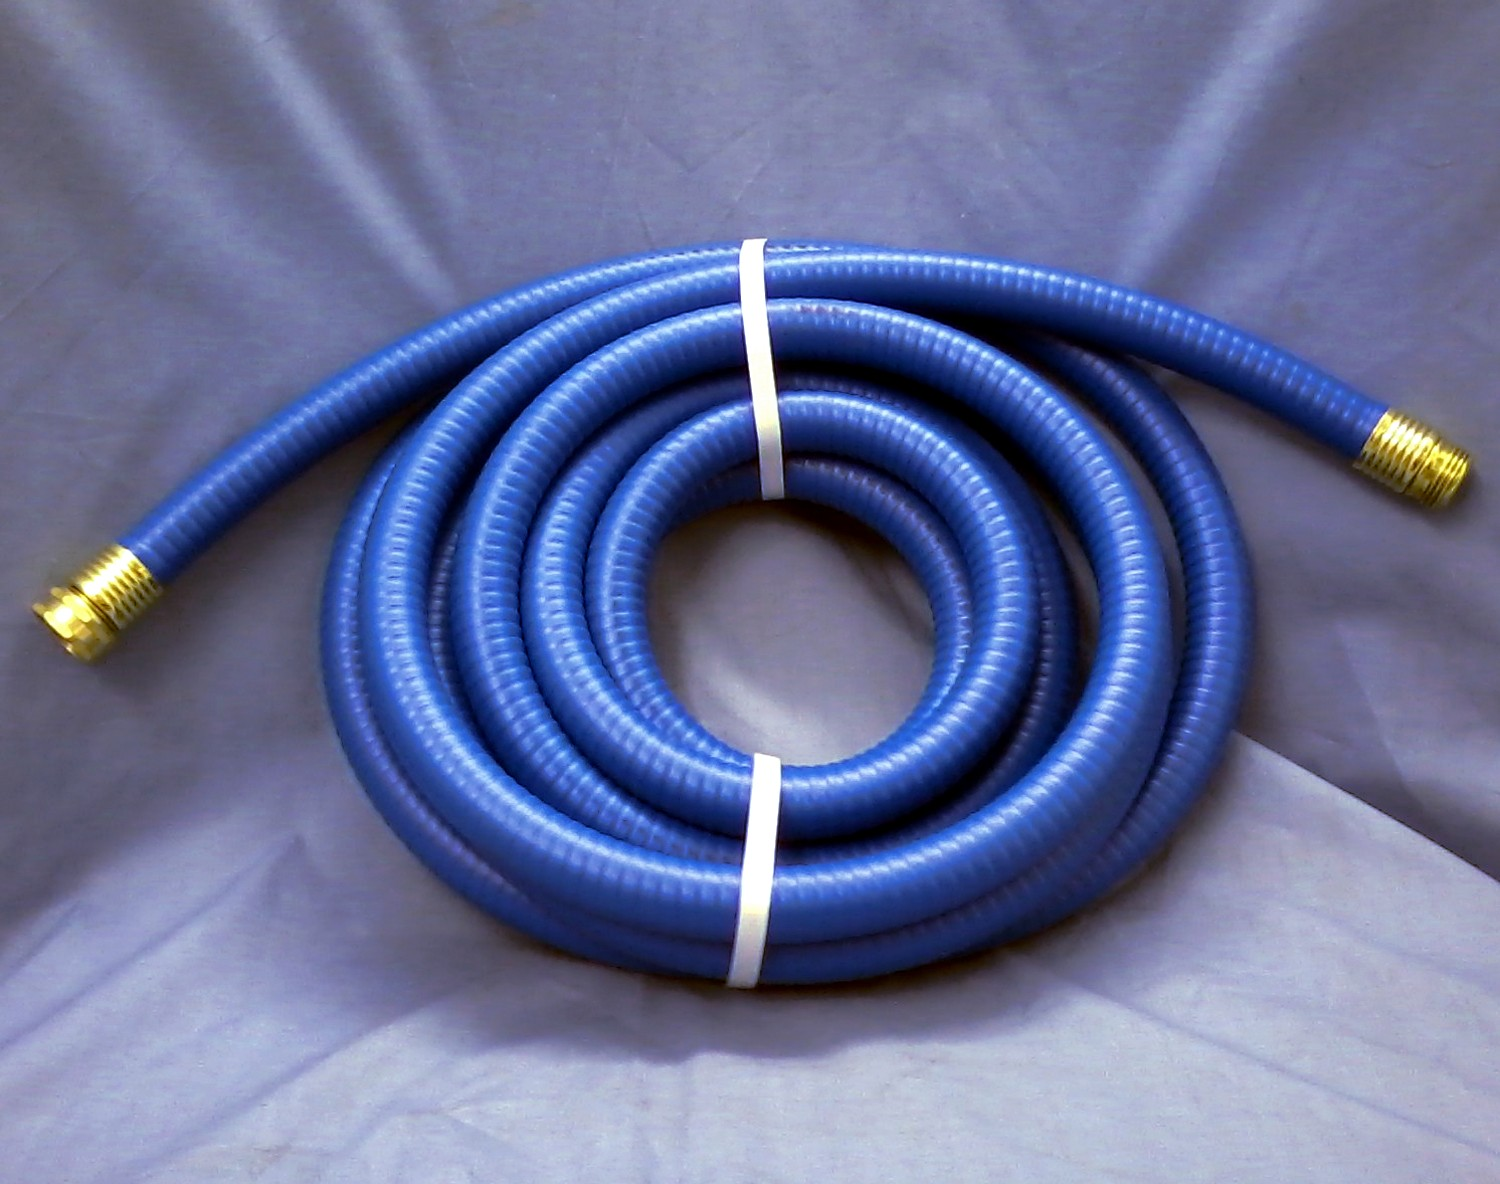 Turbine Air hose 30ft with springs: Bathtub refinishing, coatings ...